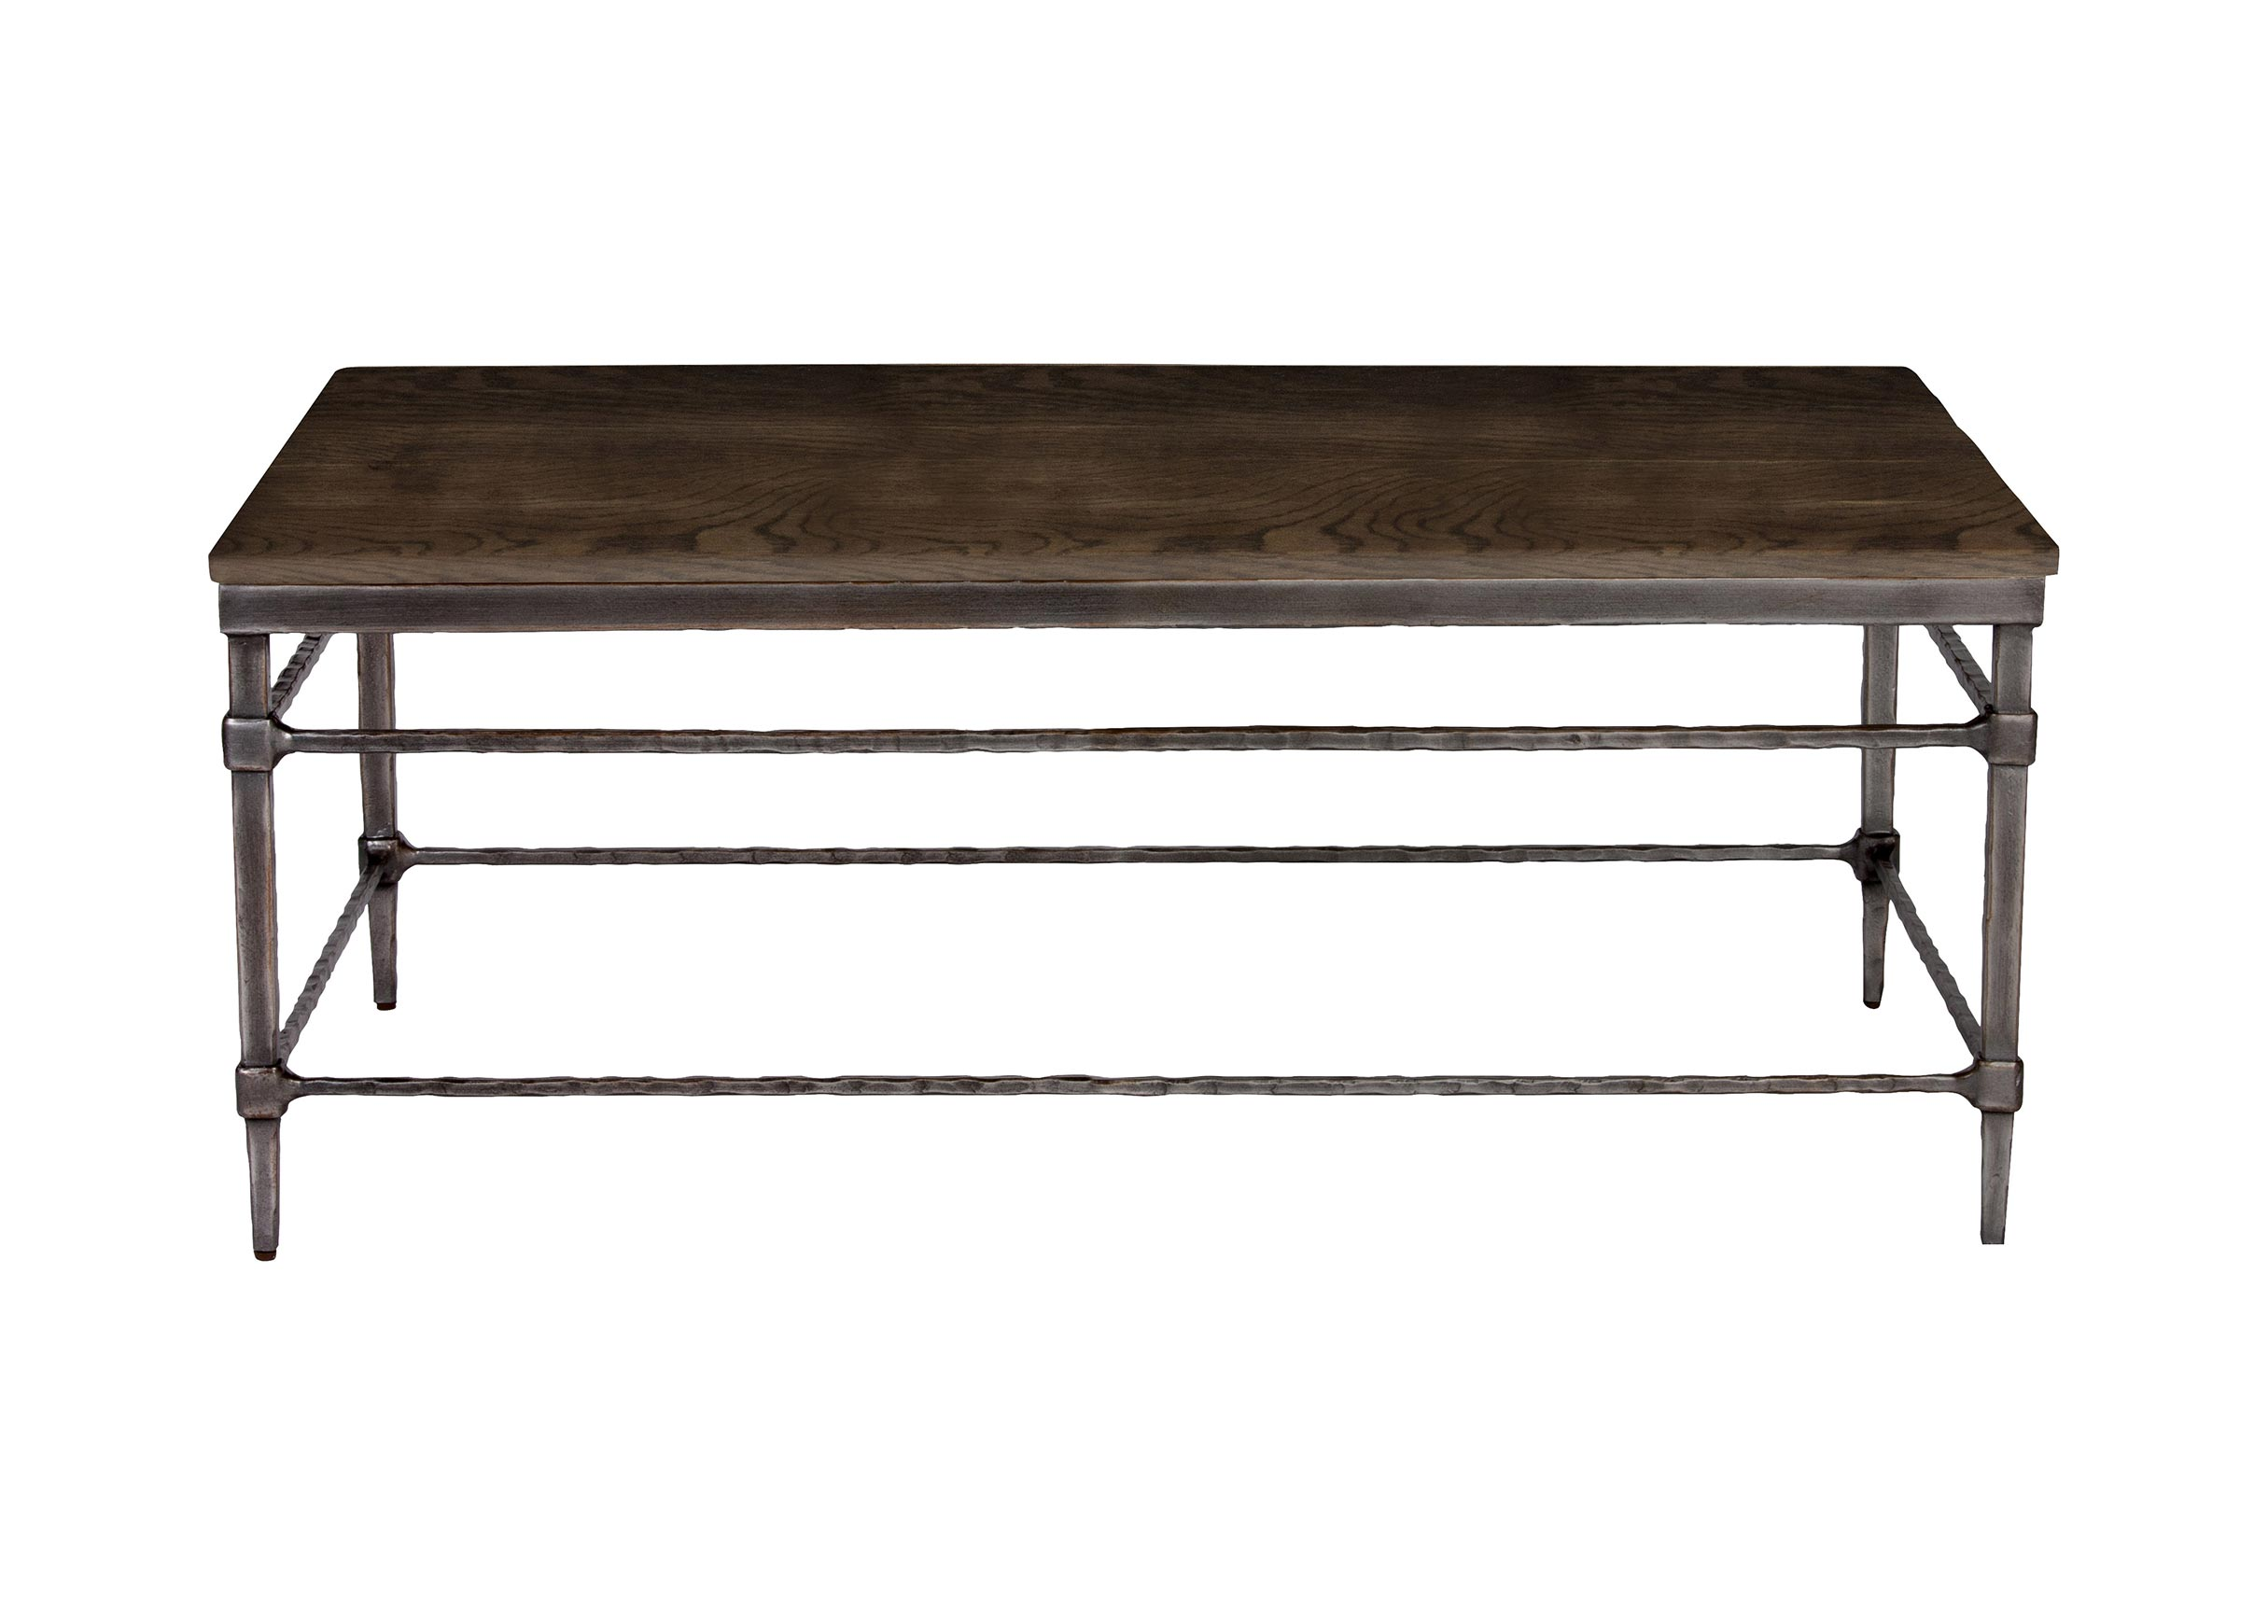 Vida Wood Top Coffee Table